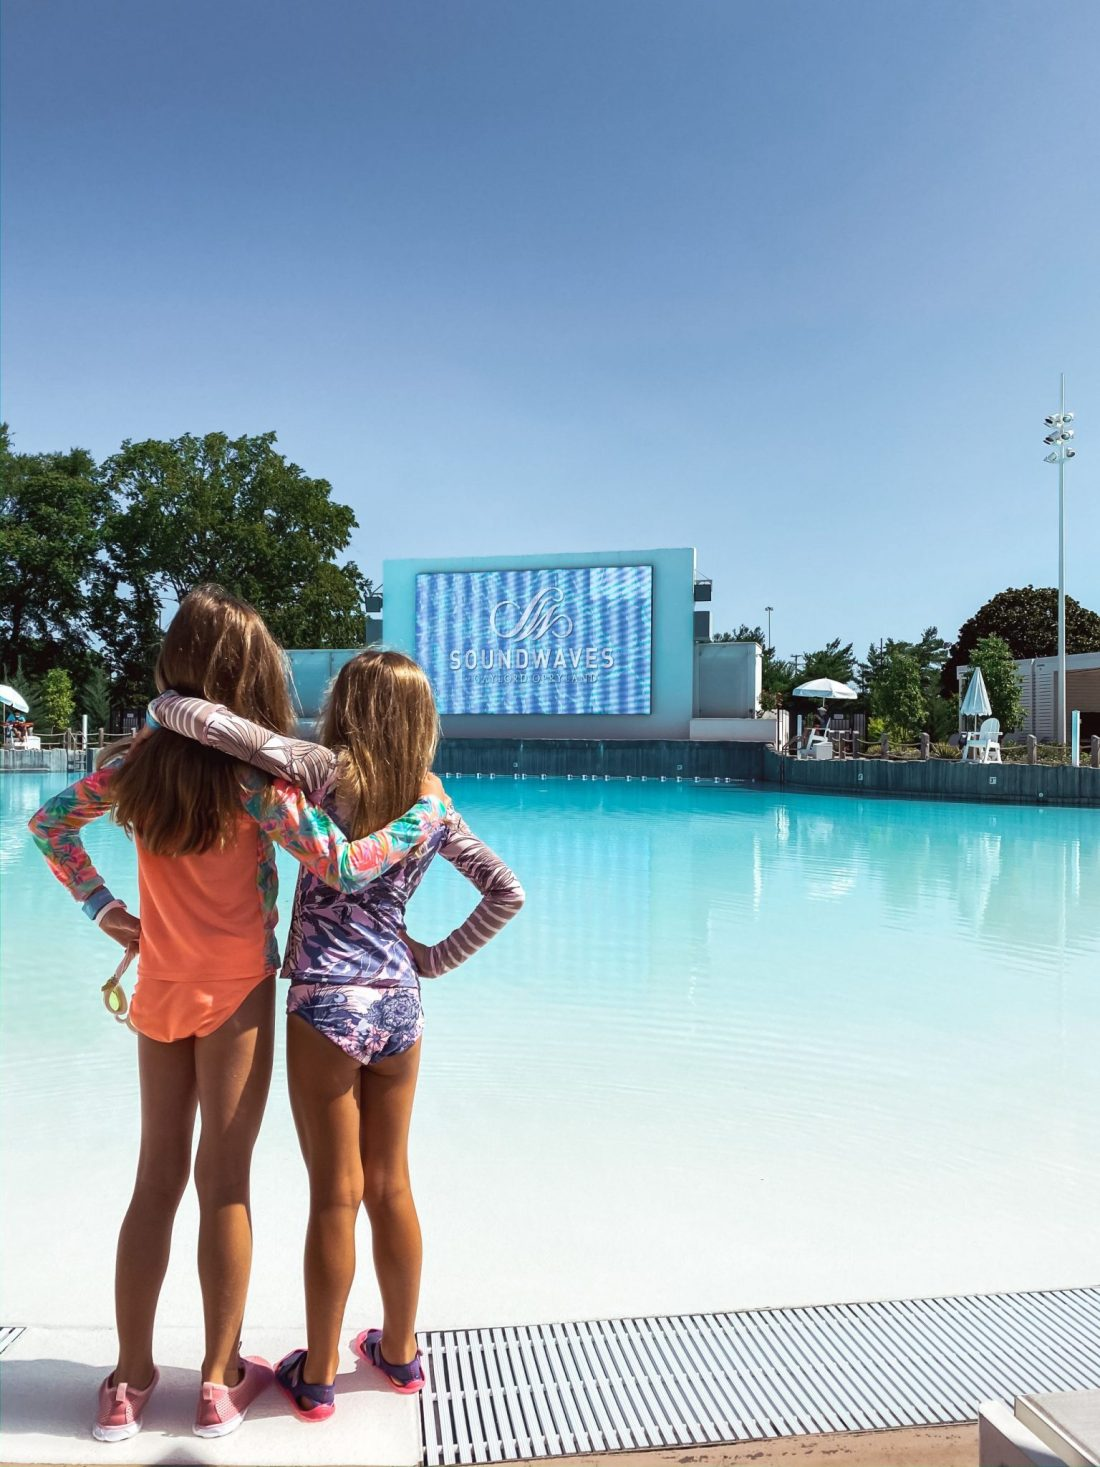 Soundwaves Water Park by popular Nashville blog, Modern Day Moguls: image of two young girls standing with their arms around each other as they stand in front of a wave pool.